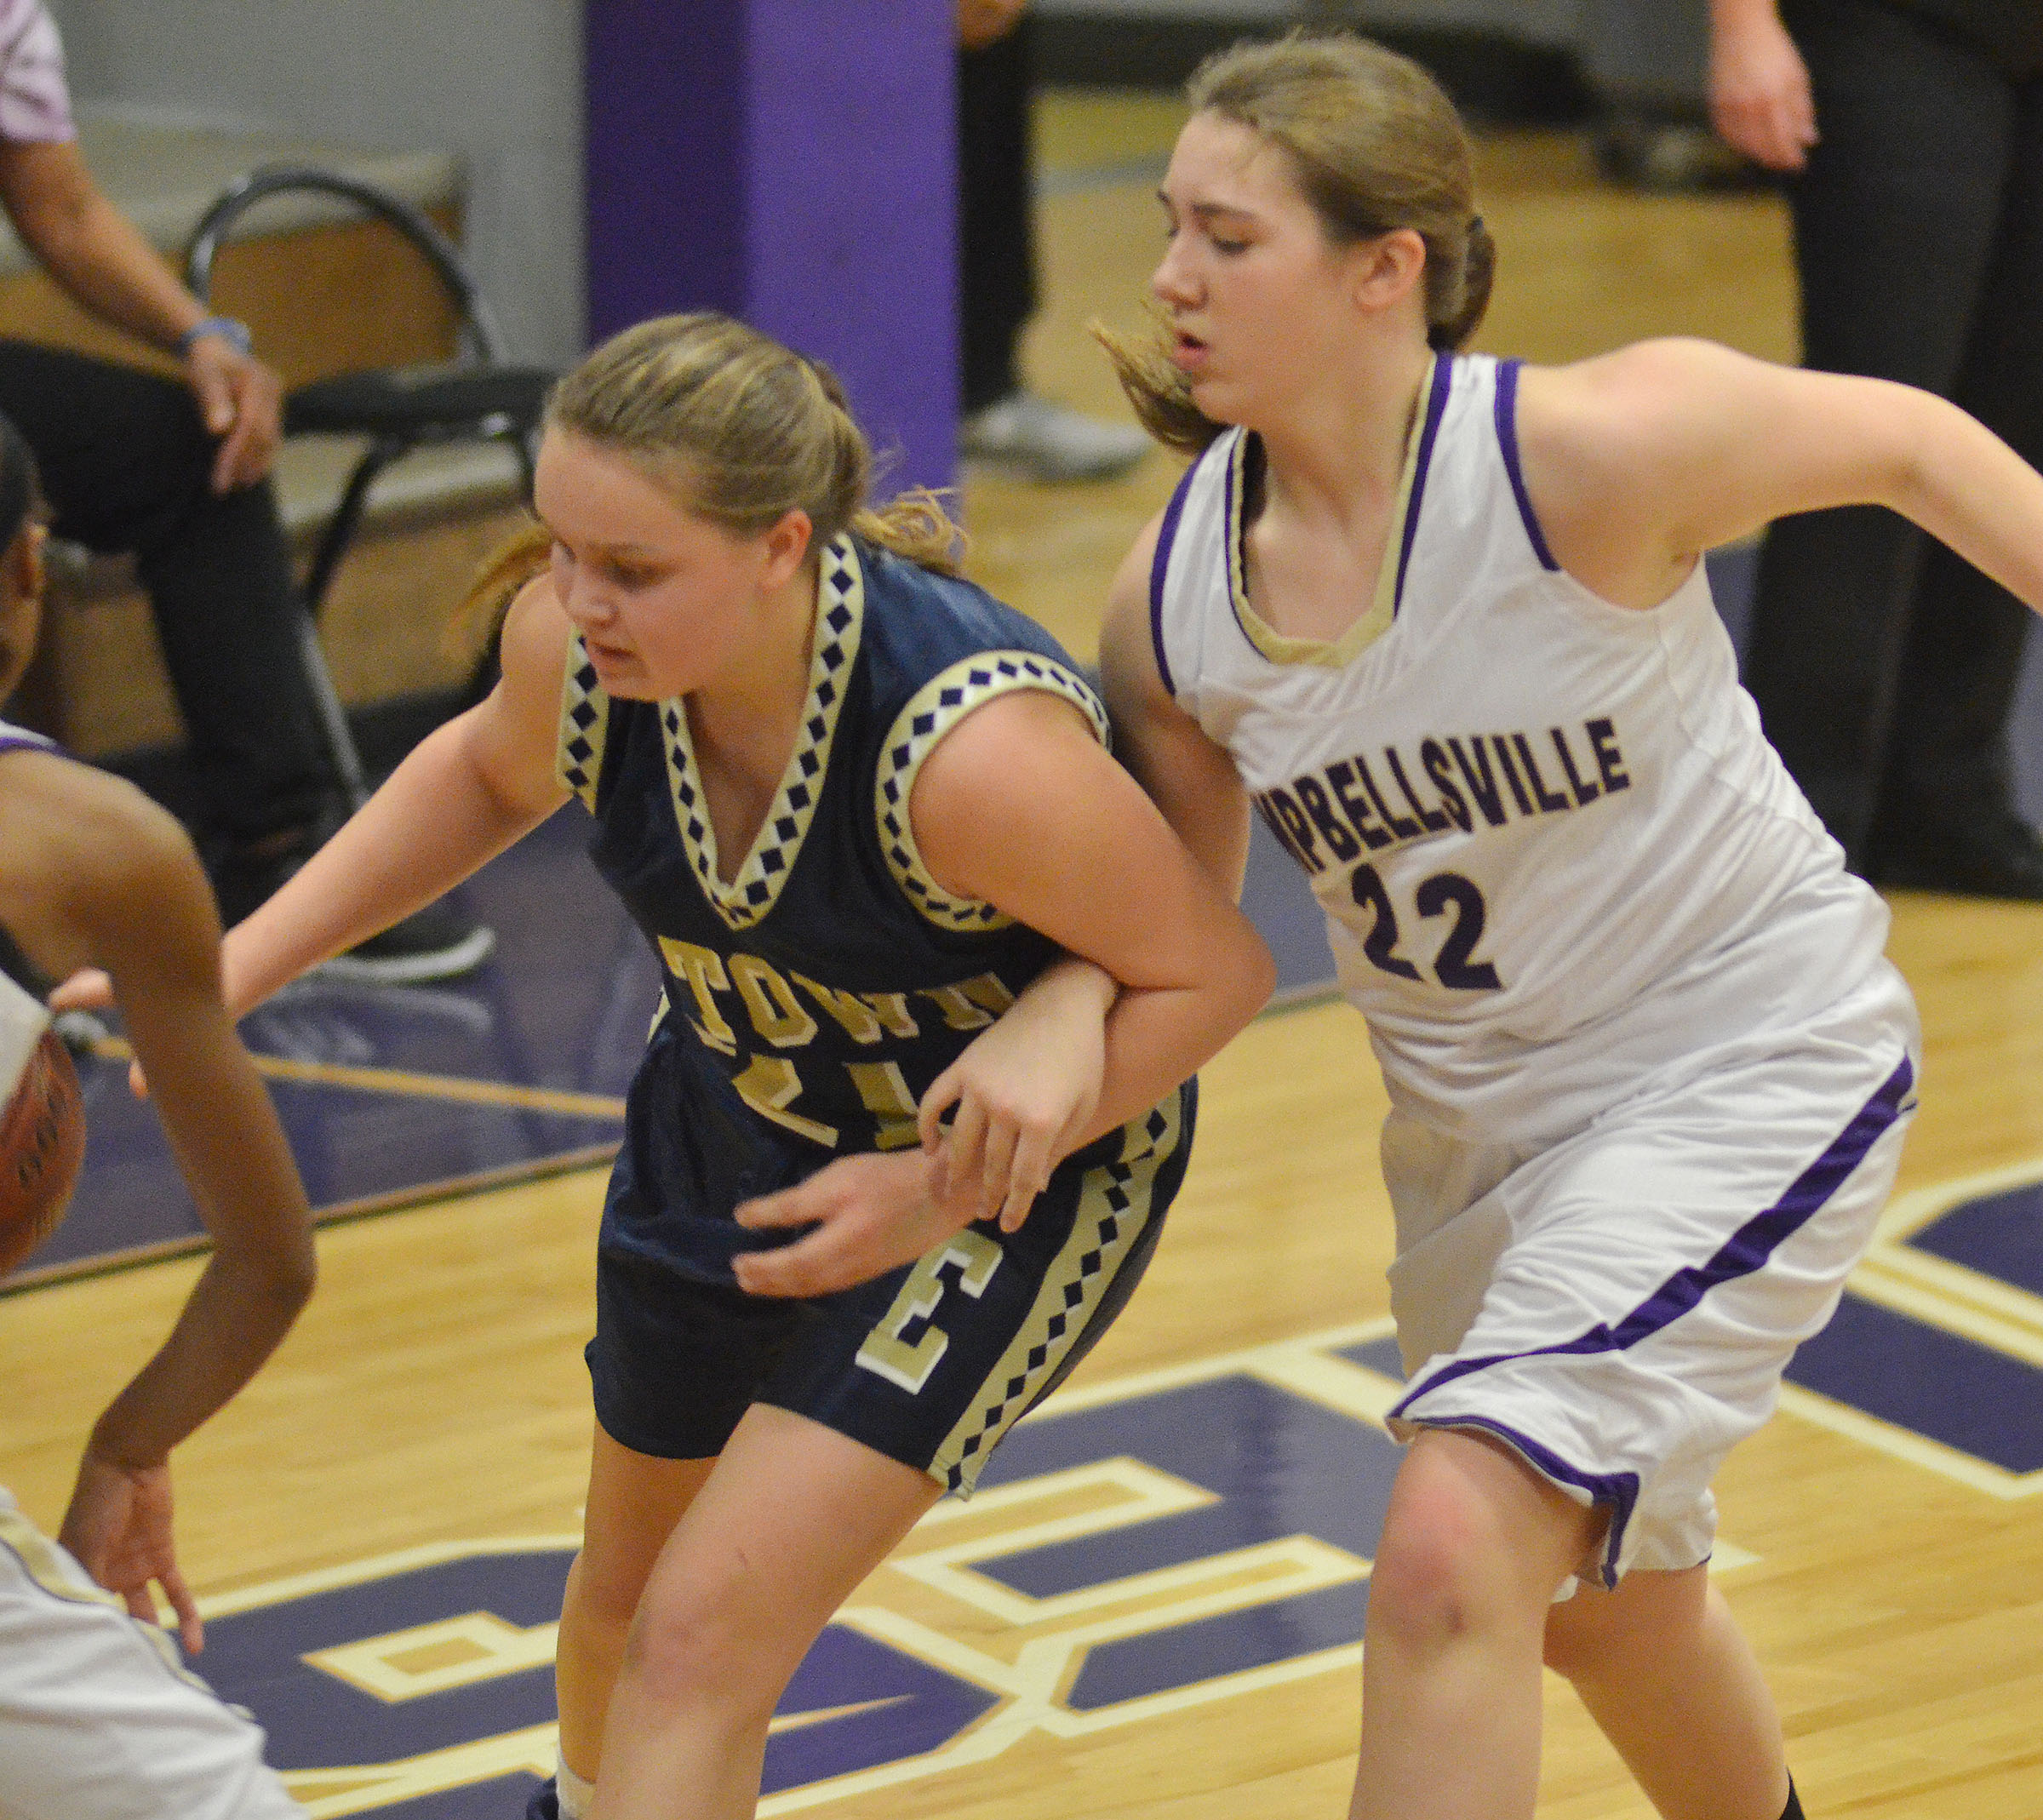 Campbellsville Middle School eighth-grader Abi Wiedewitsch plays defense.